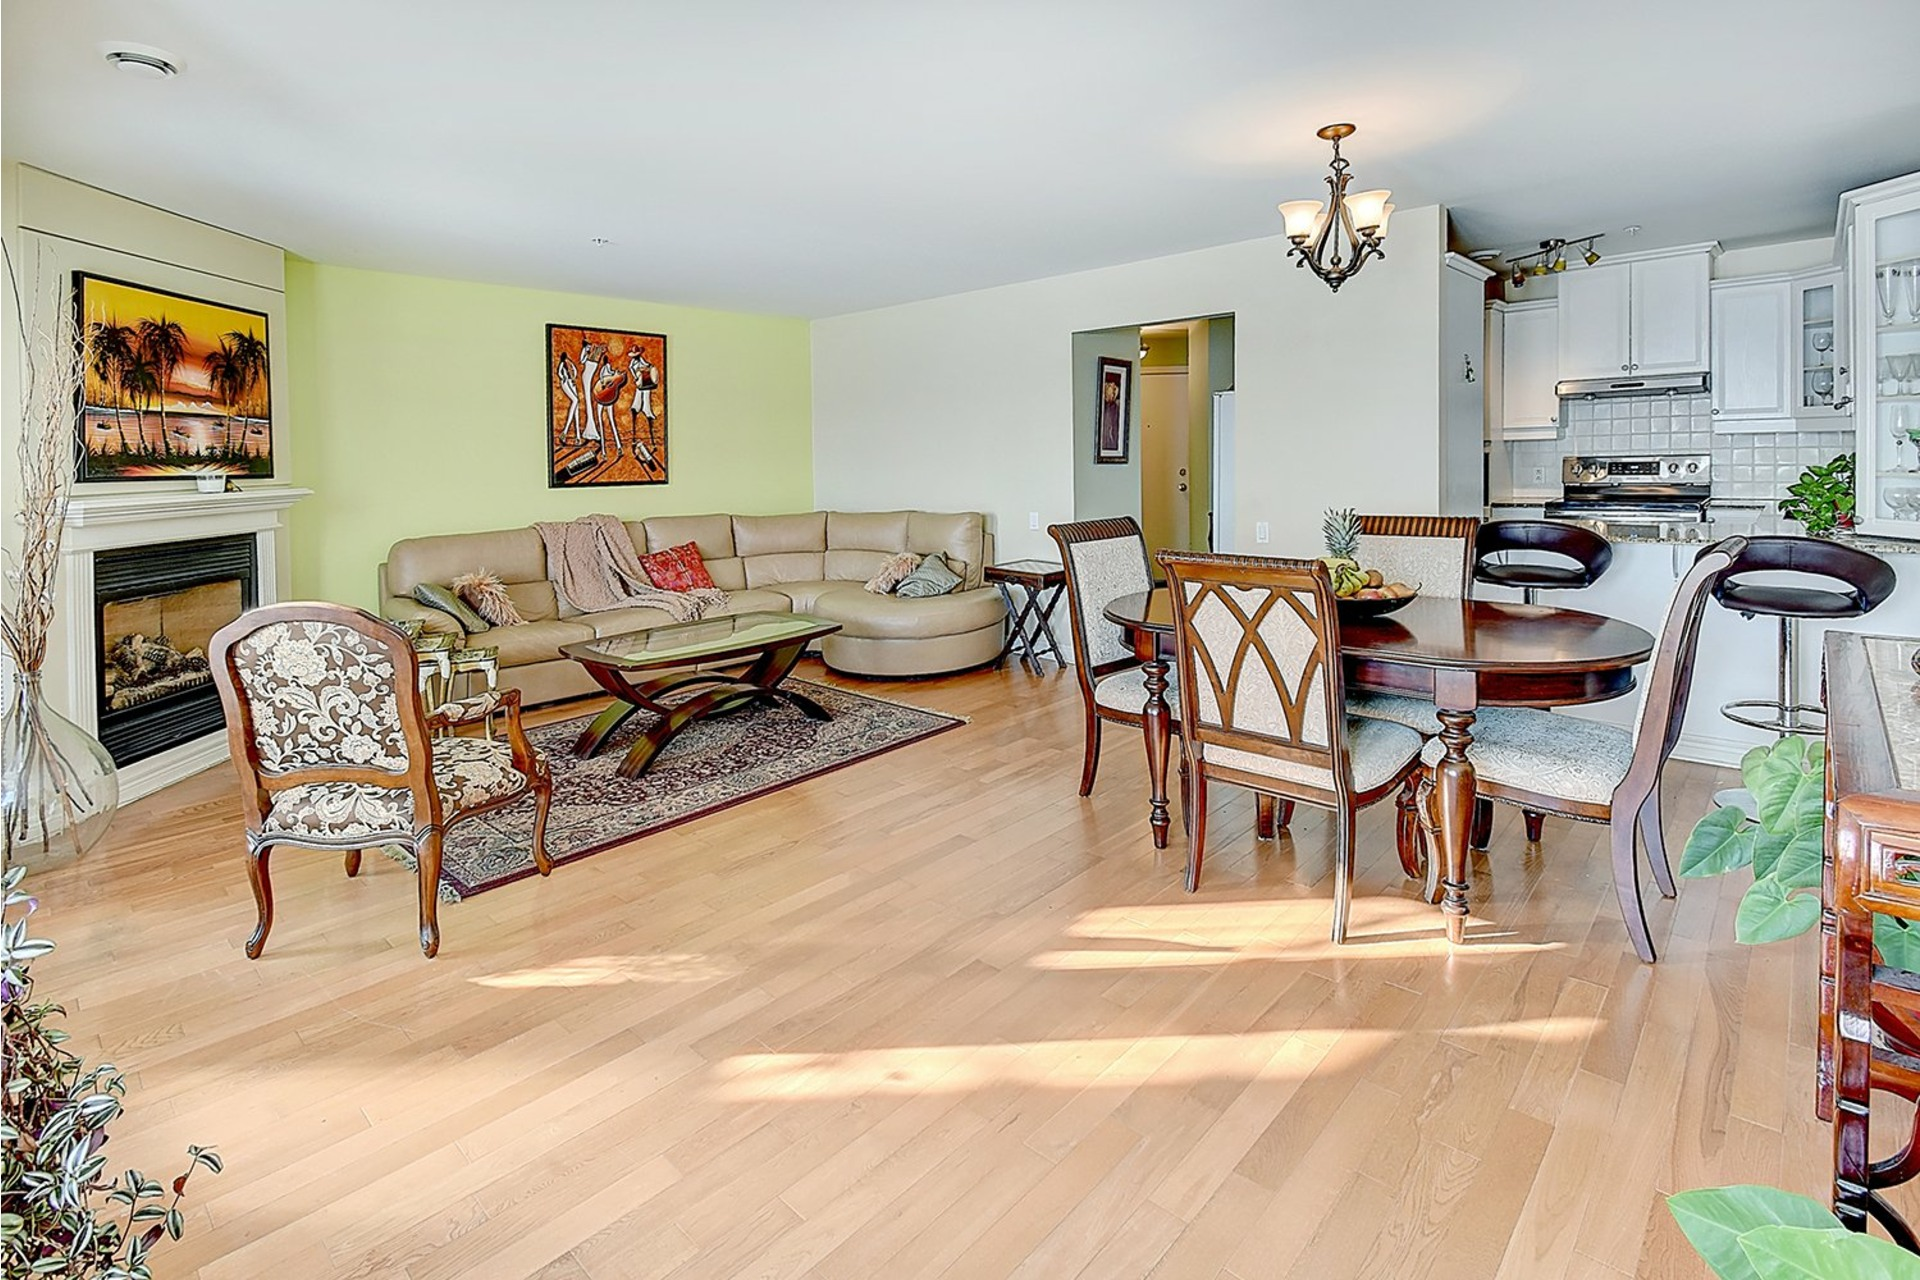 image 4 - Apartment For sale L'Île-Perrot - 8 rooms